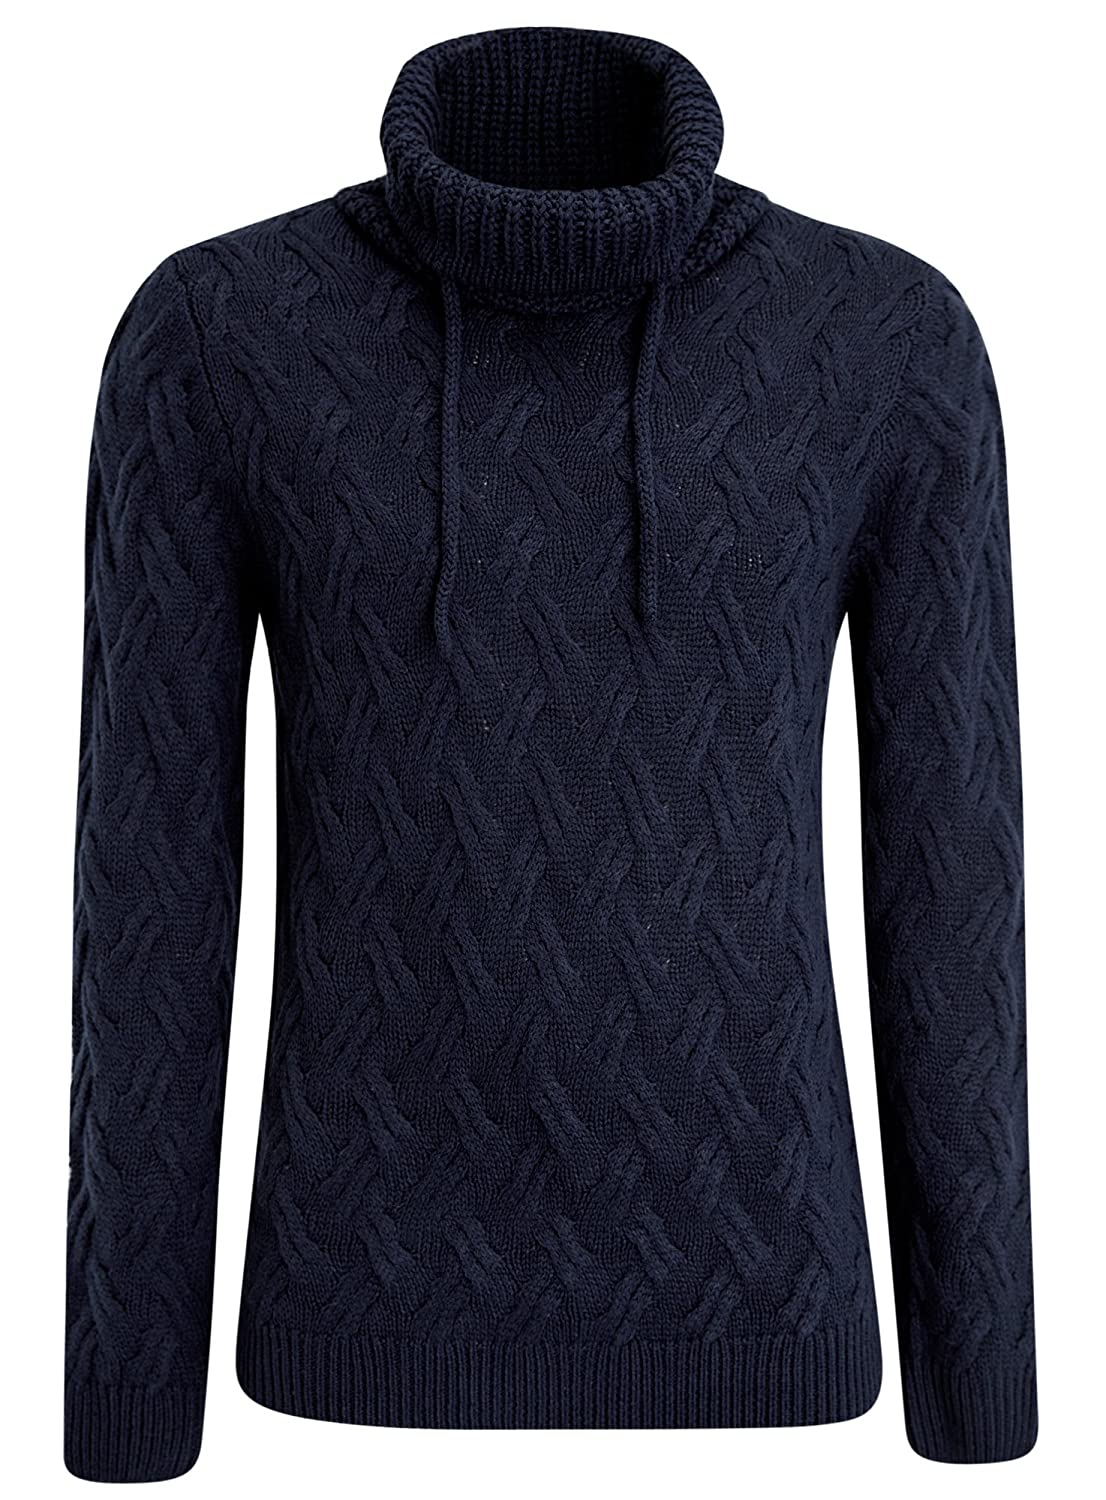 oodji Ultra Men's Textured Large Collar Pullover